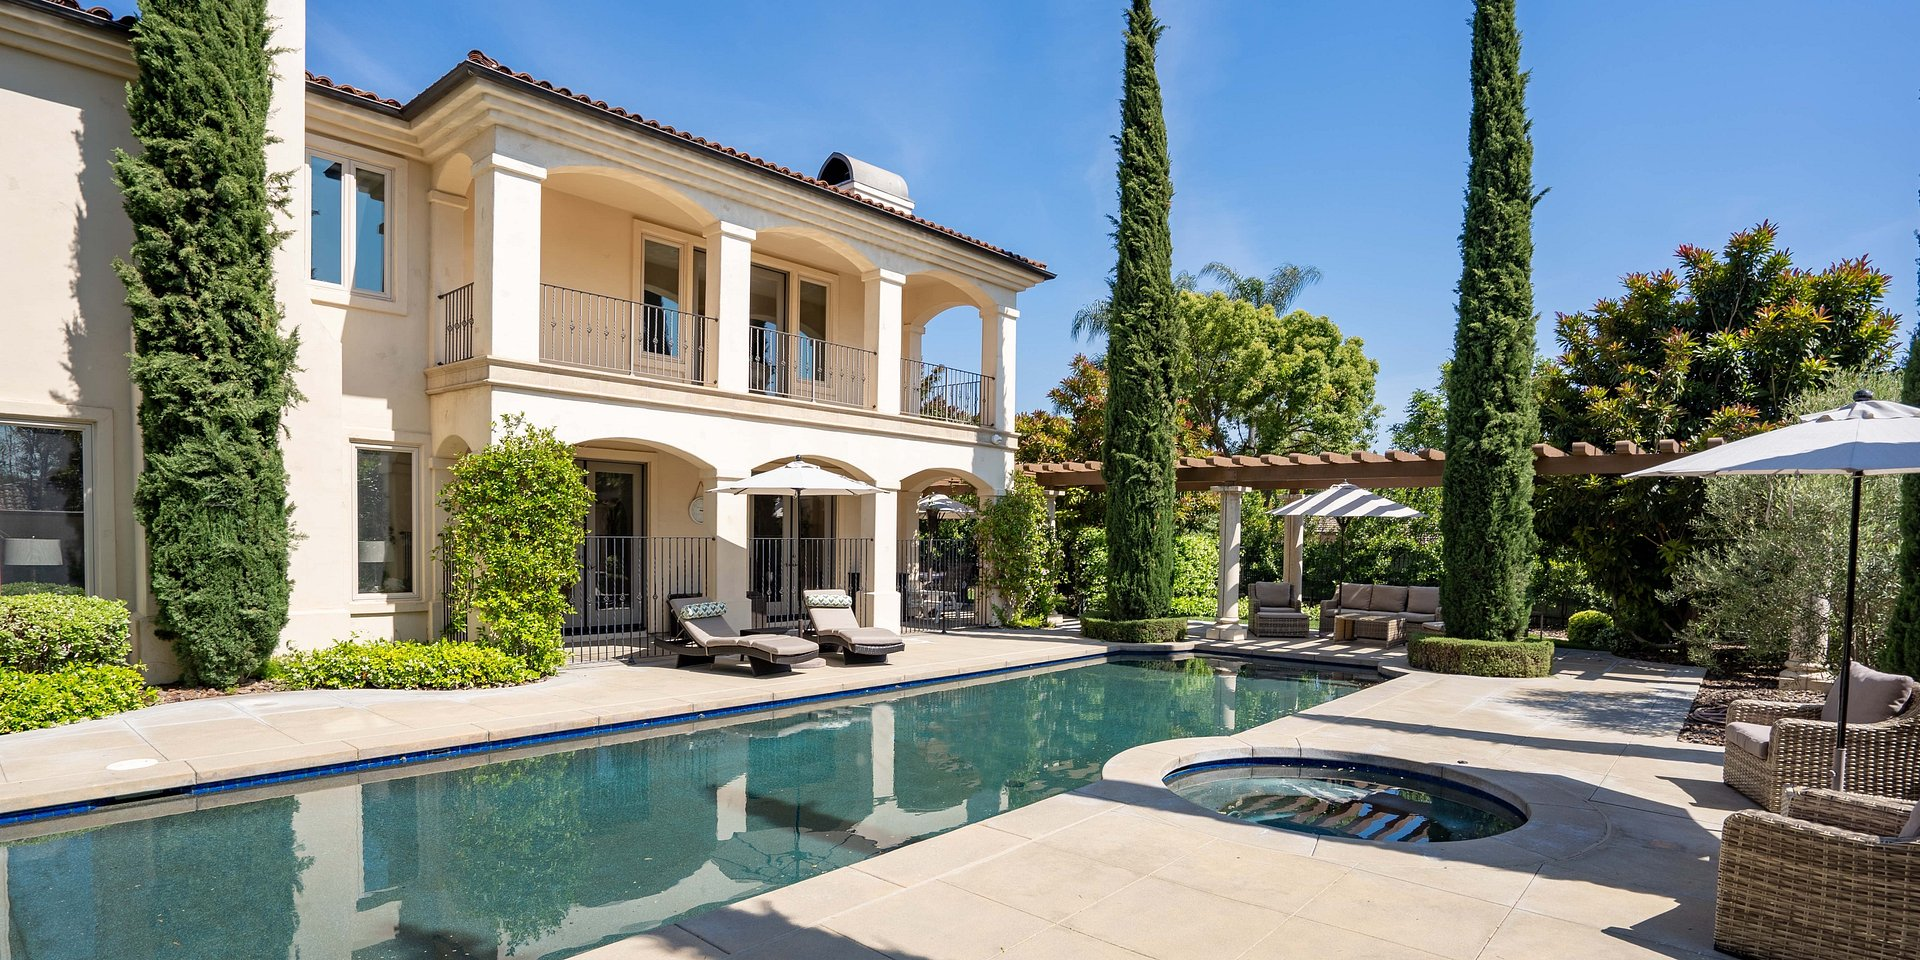 Coldwell Banker Realty Lists a Yorba Linda Property for $2,998,000 to $3,098,000